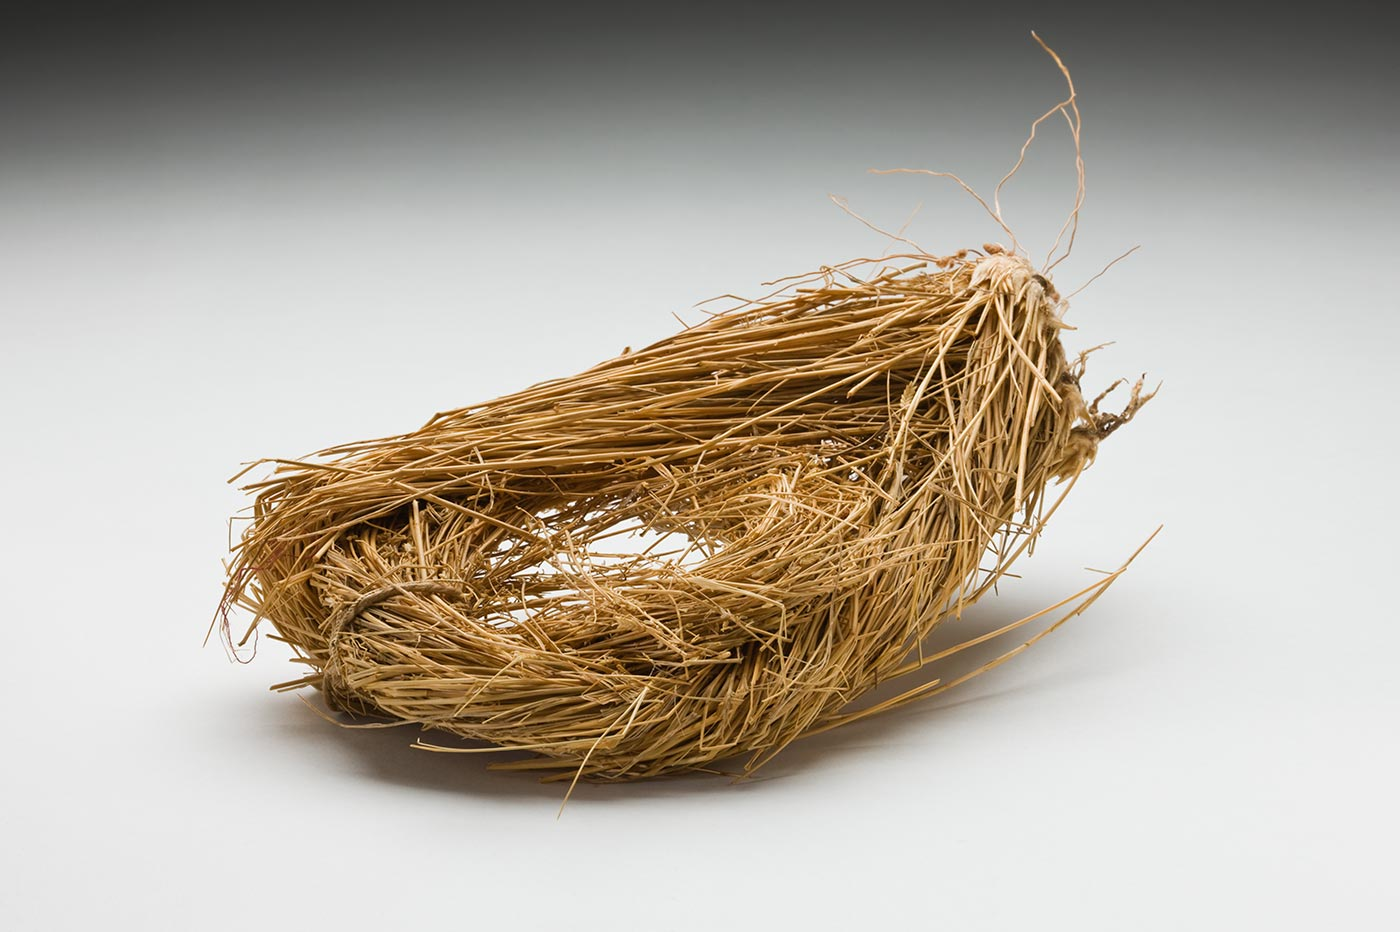 An undyed grass tear drop like shaped head pad. Two bunches of grass have been twisted and folded over to form the tear drop like shape. The narrow end includes the grass roots. Two tags are attached with string. - click to view larger image